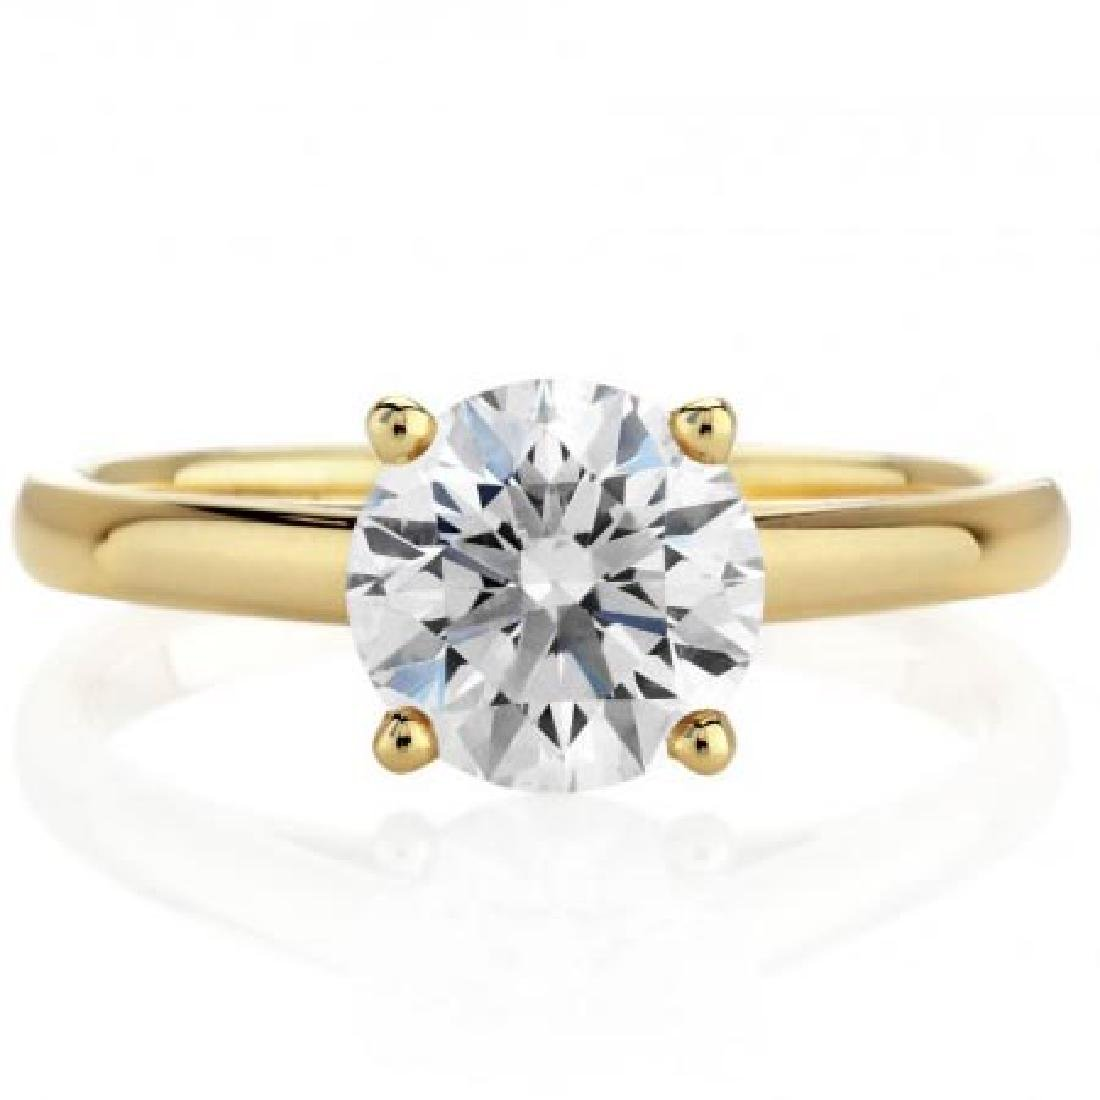 CERTIFIED 1.03 CTW ROUND D/SI2 SOLITAIRE RING IN 14K YE